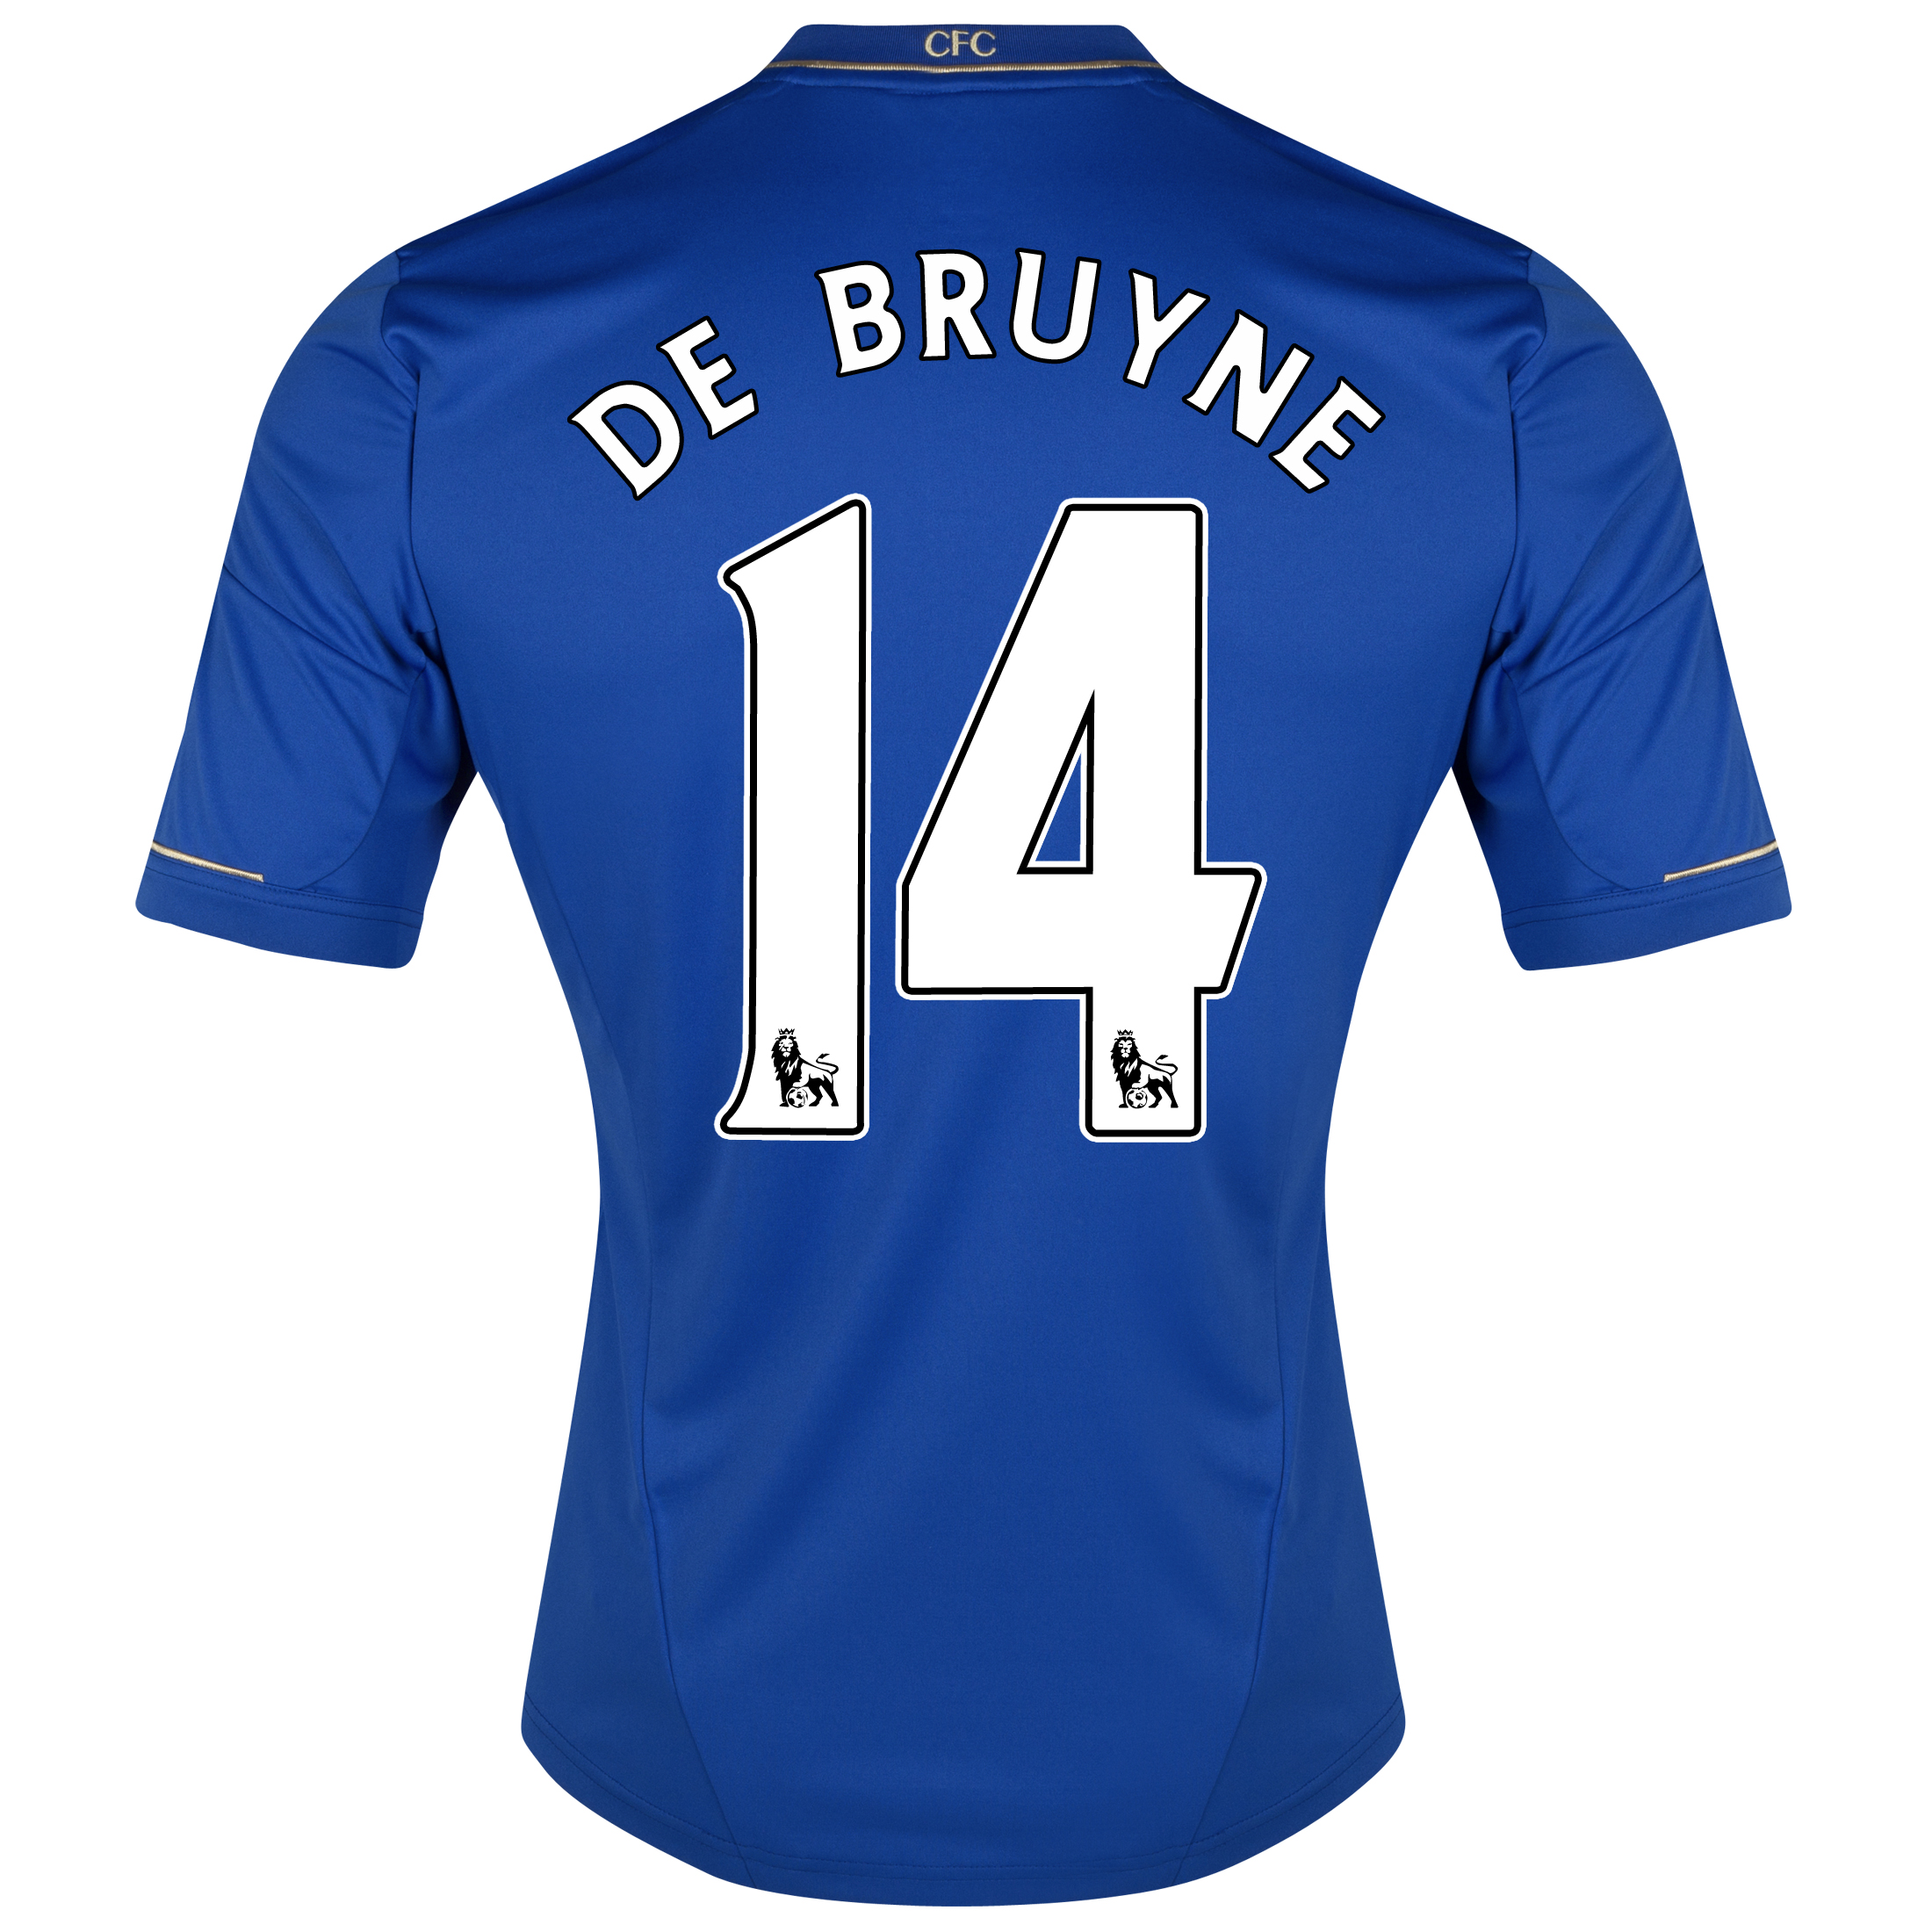 Chelsea Home Shirt 2012/13 - Long Sleeved with De Bruyne 14 printing